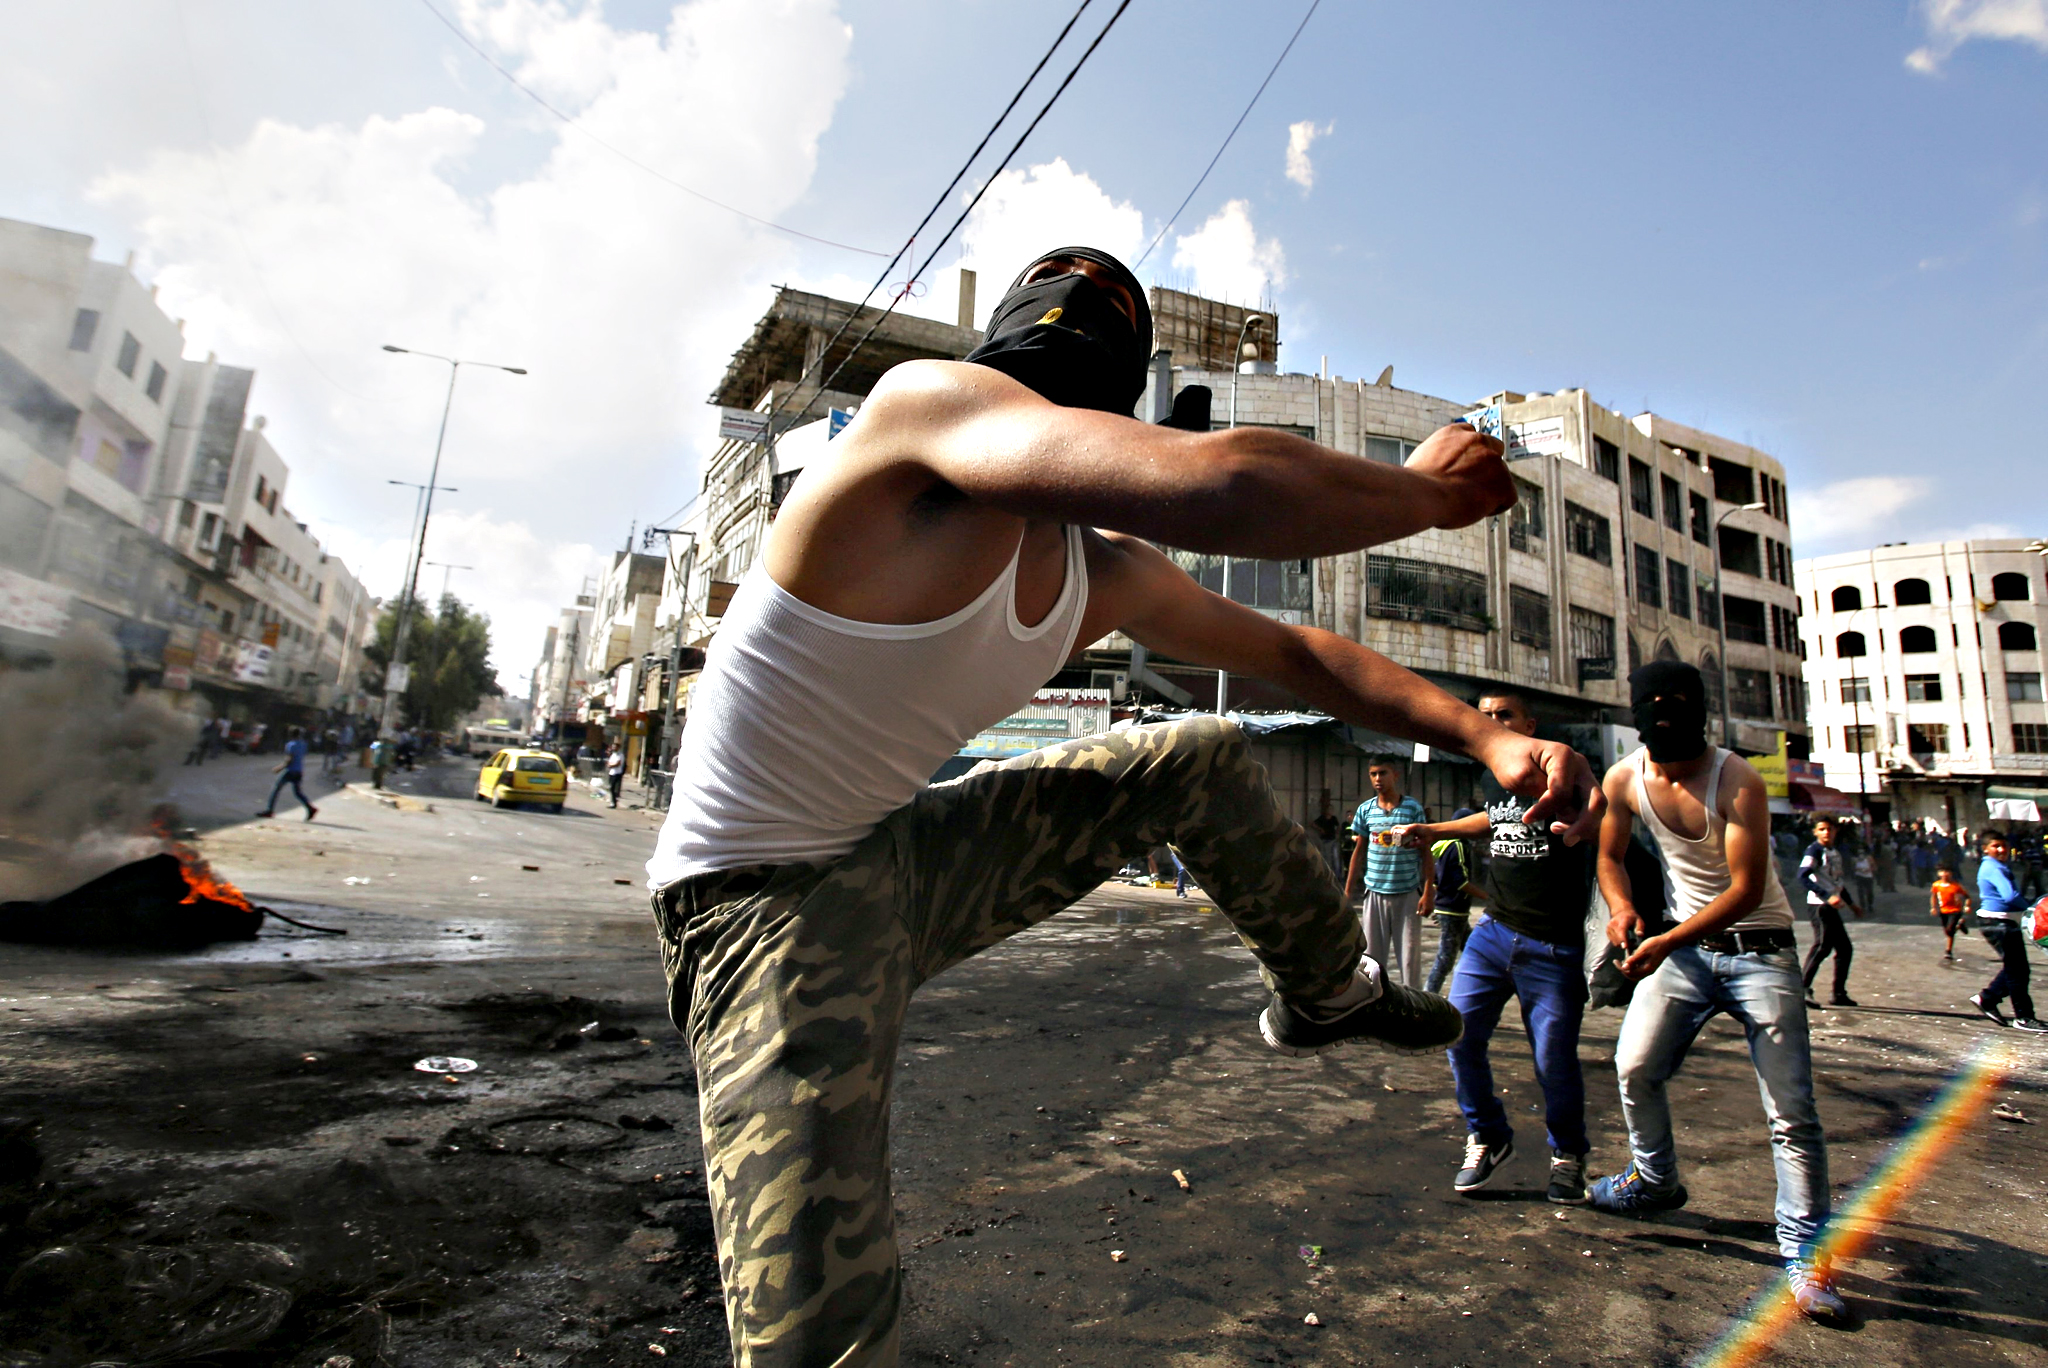 Palestinian protesters throw stones at Israeli troops during clashes over tension in Jerusalem's al-Aqsa mosque, in the occupied West Bank city of Hebron...Palestinian protesters throw stones at Israeli troops during clashes over tension in Jerusalem's al-Aqsa mosque, in the occupied West Bank city of Hebron September 29, 2015. Israeli police and Palestinians clashed on Sunday at Jerusalem's al-Aqsa mosque compound, where violence in recent weeks has raised international concern.